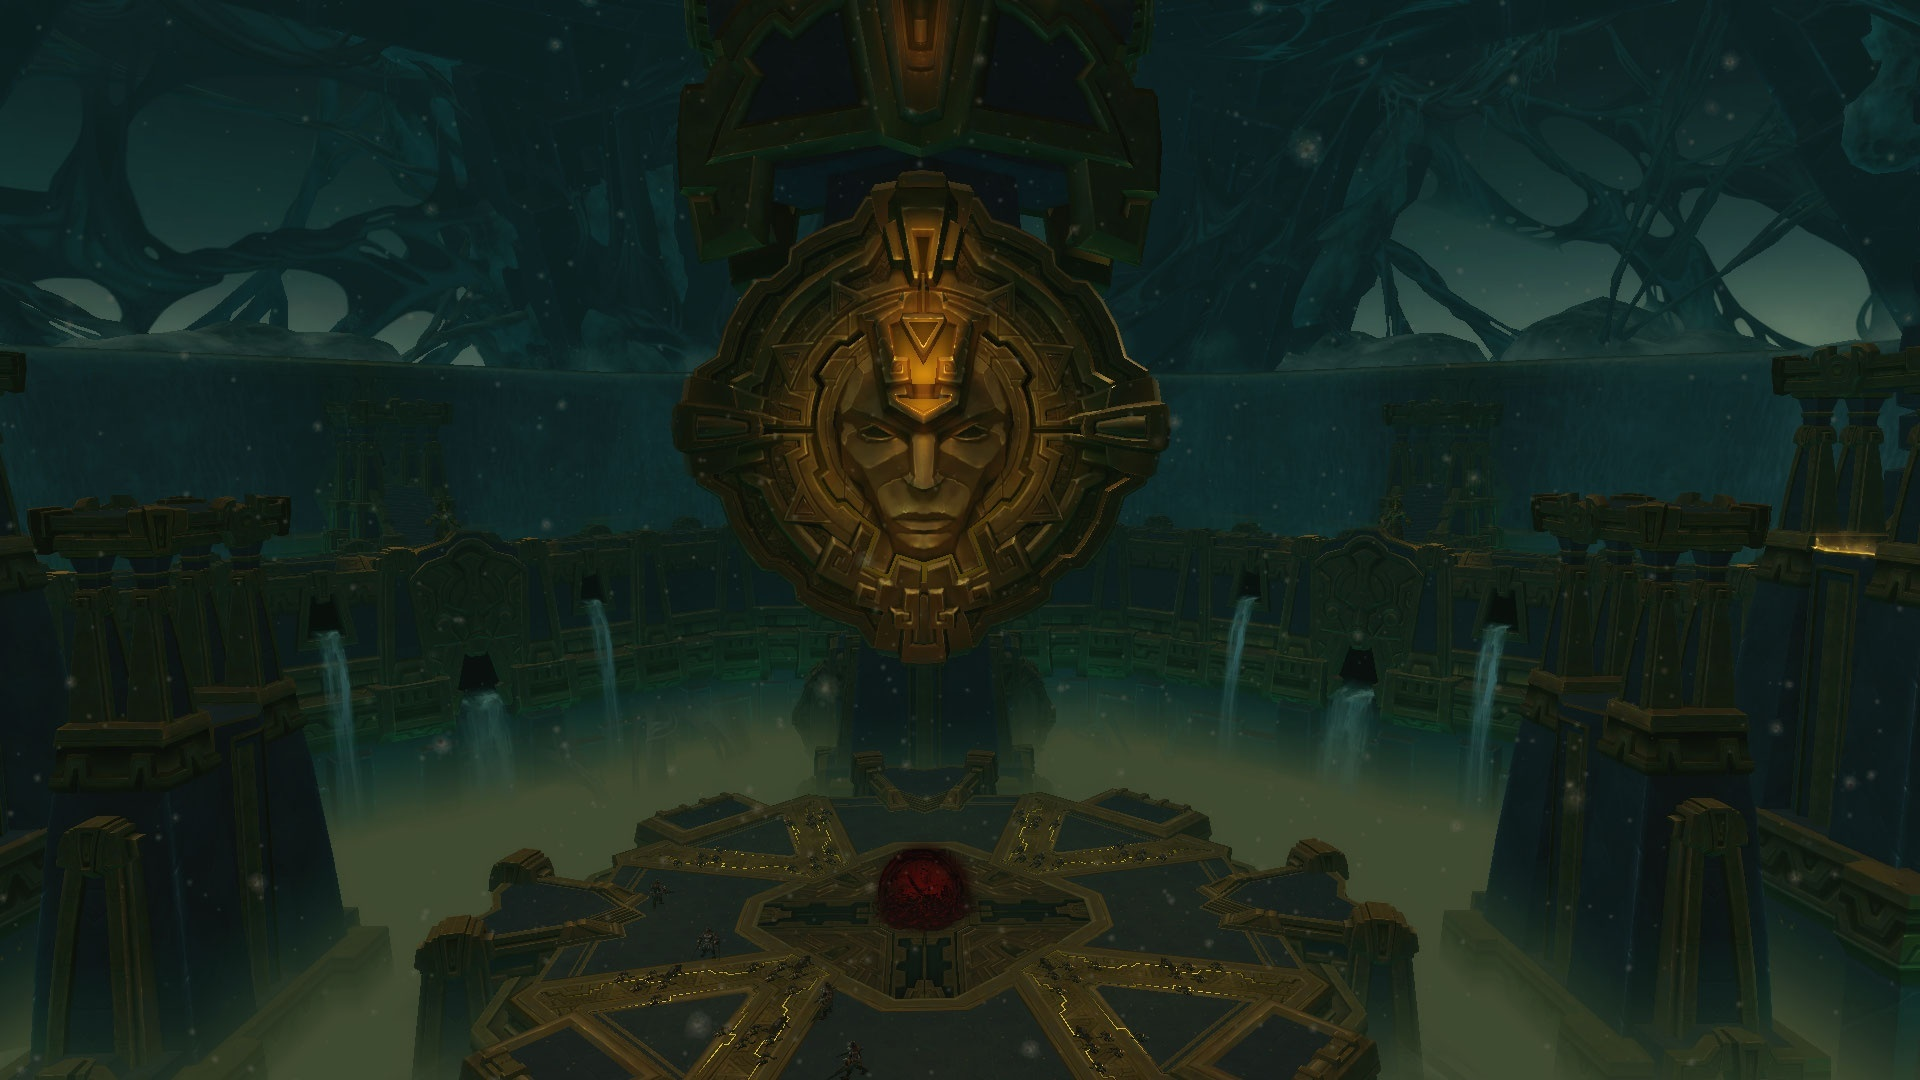 uldir raid strategy guides for all bosses by fatbosstv now live